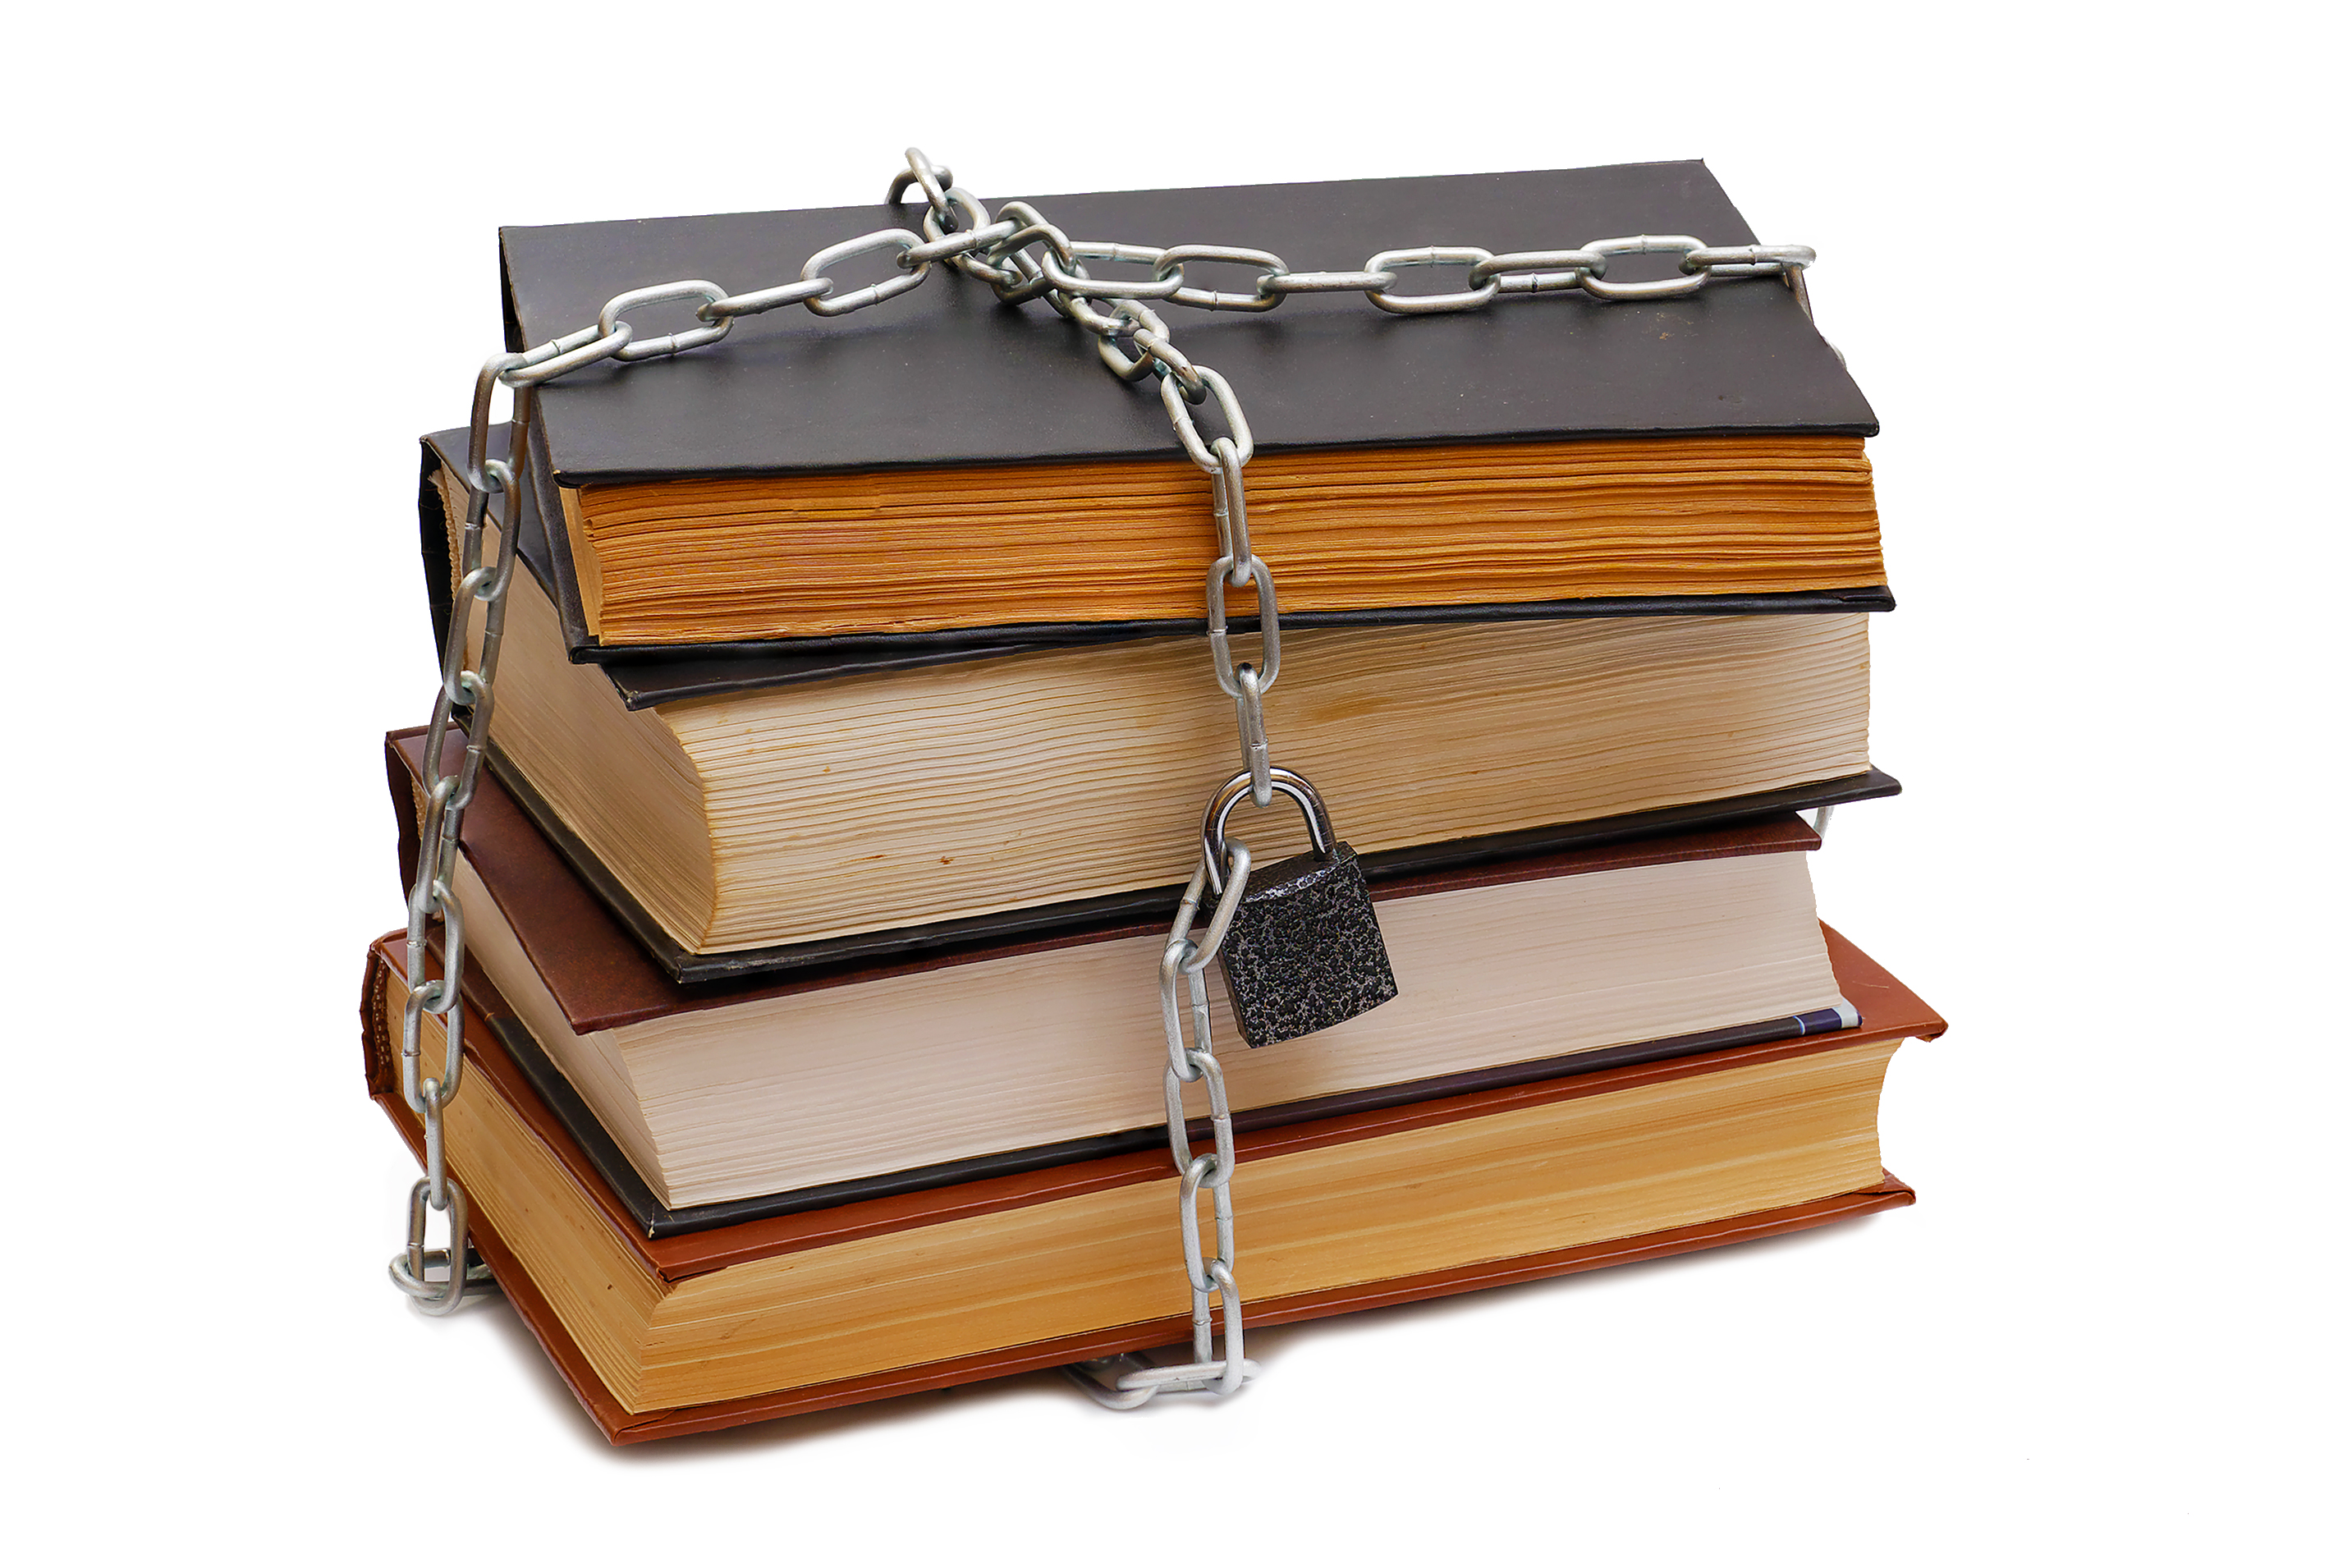 Top 10 Challenged Books for Banned Books Week